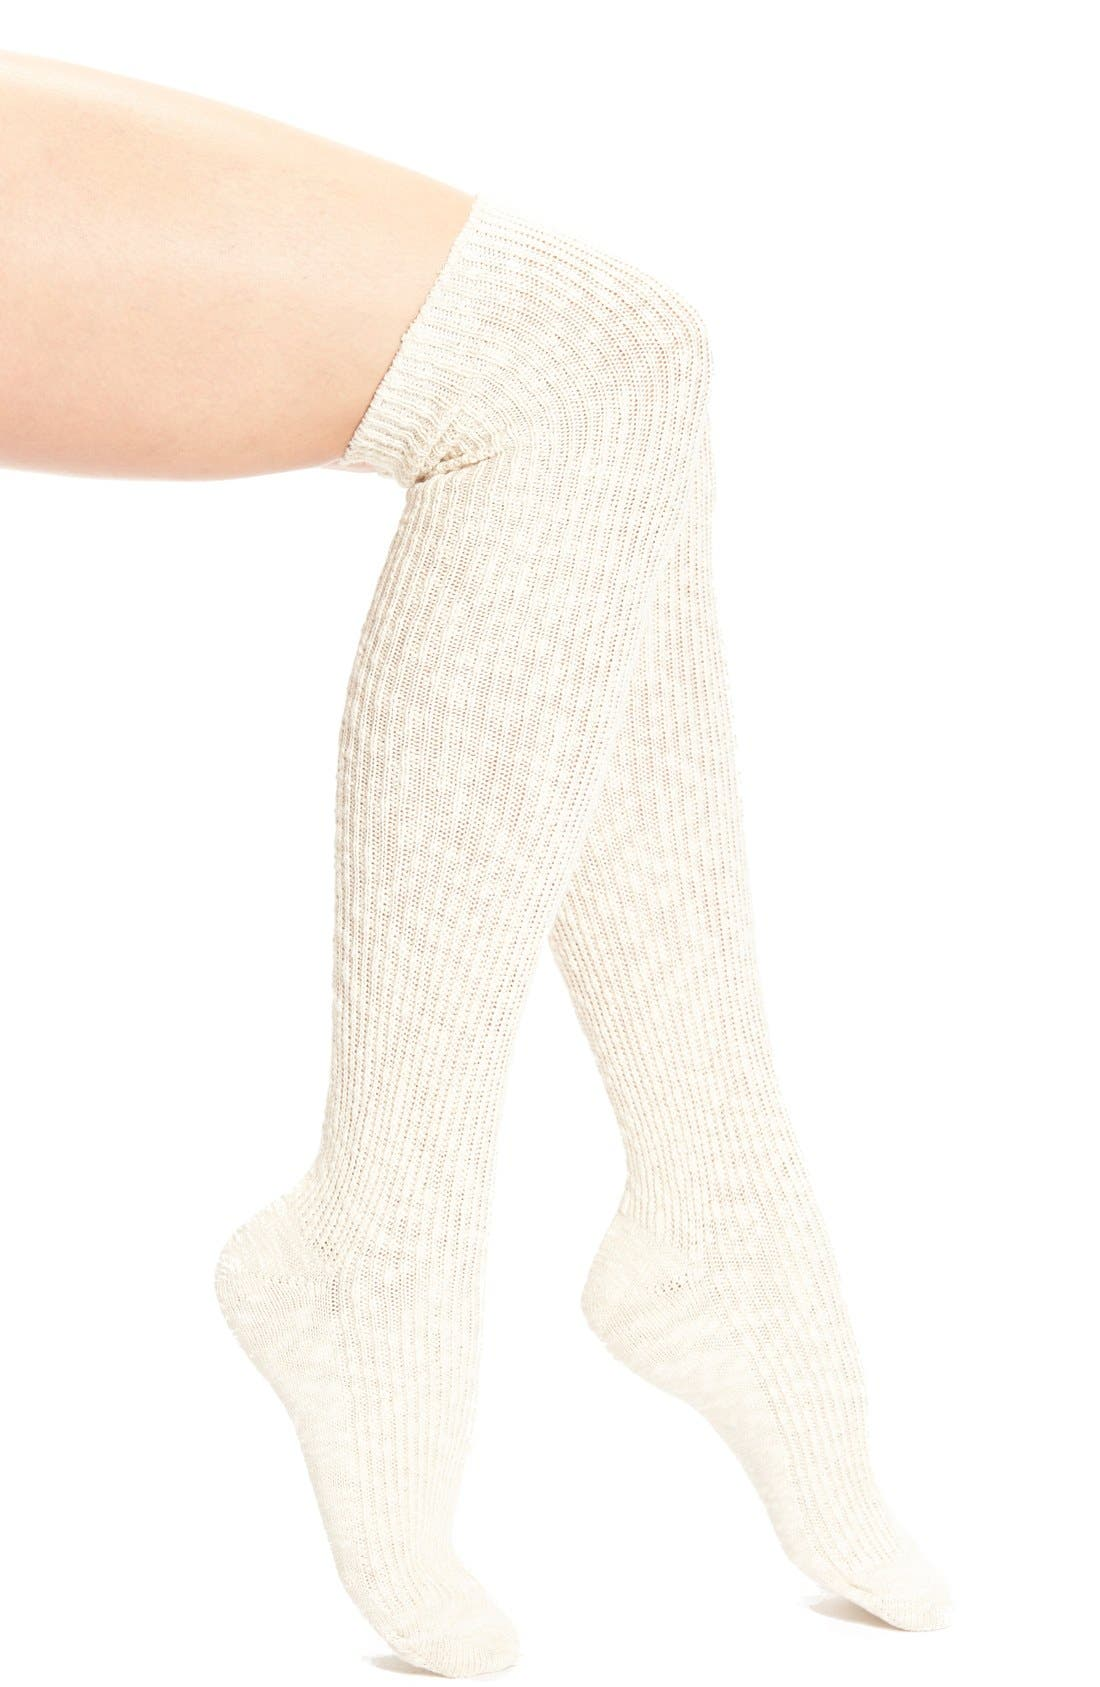 Main Image - Nordstrom Marled Over the Knee Socks